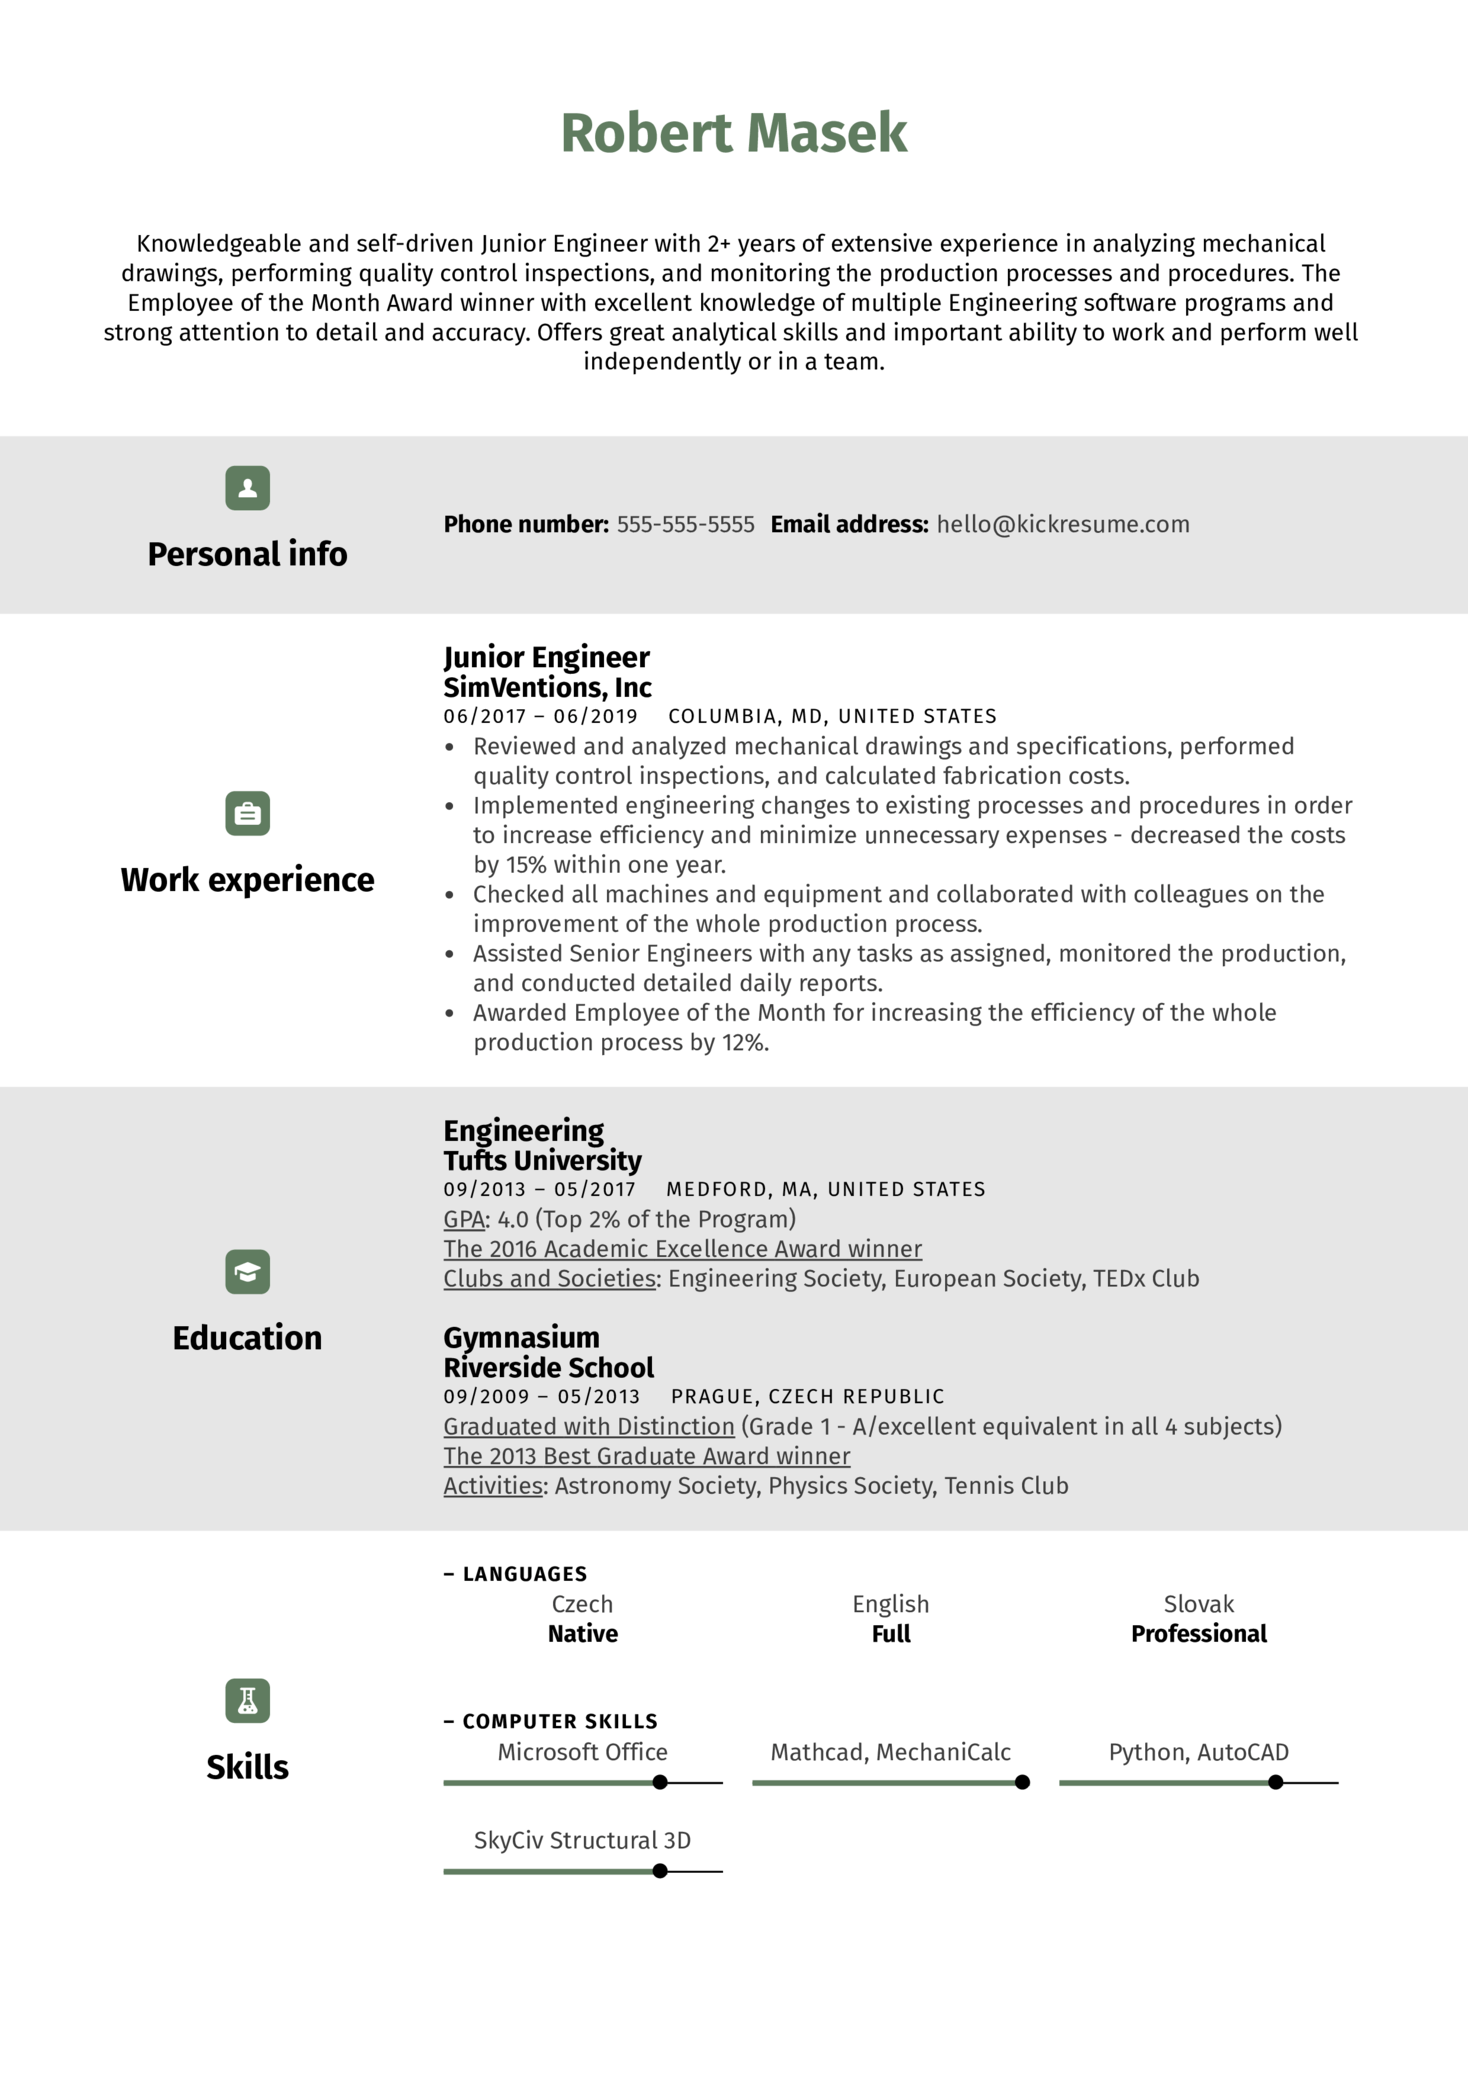 Junior Engineer Resume Sample (parte 1)